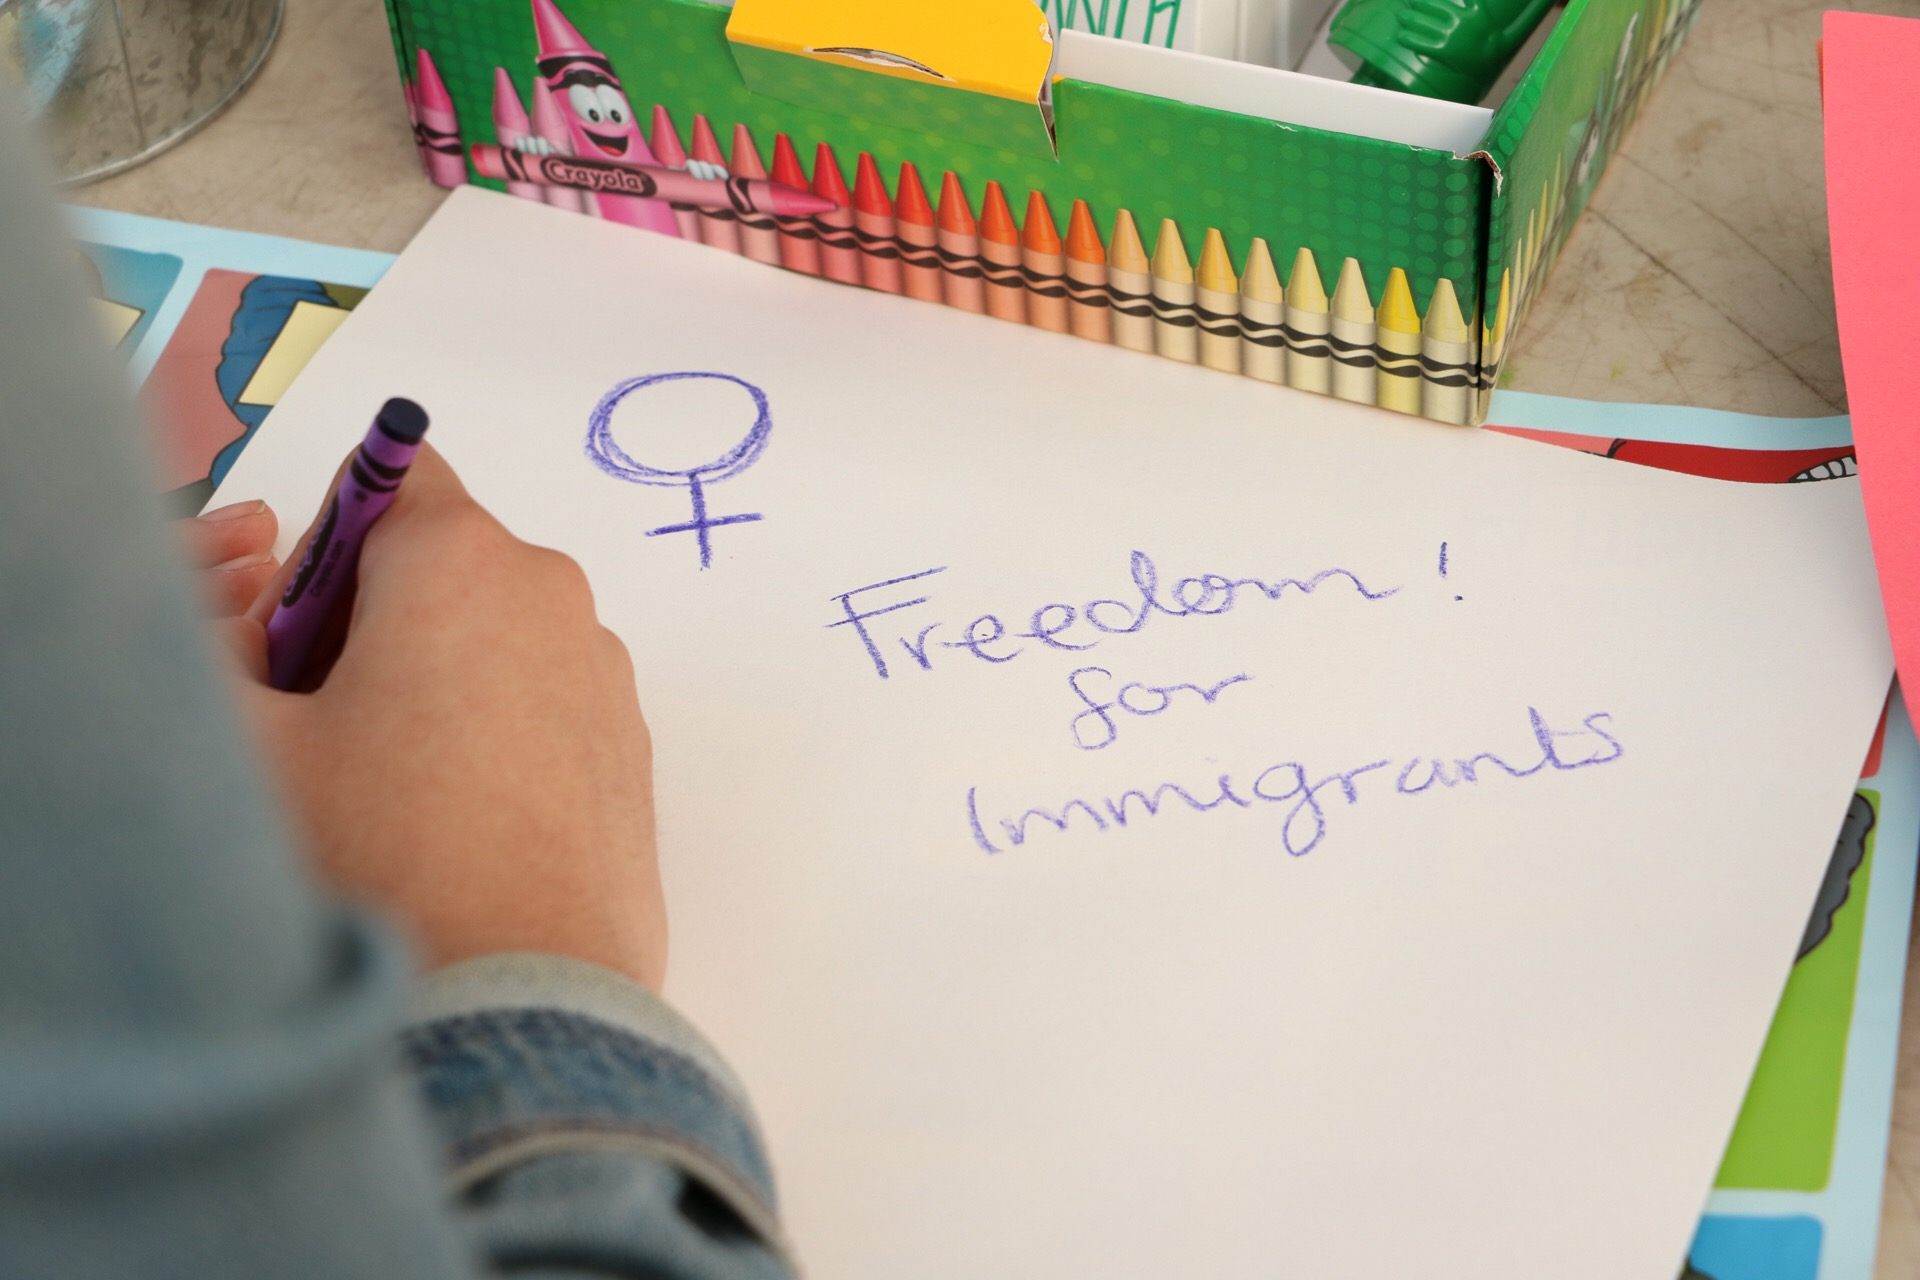 IMMPRINT: Every Immigrant Has A Voice. This Is Their Platform.